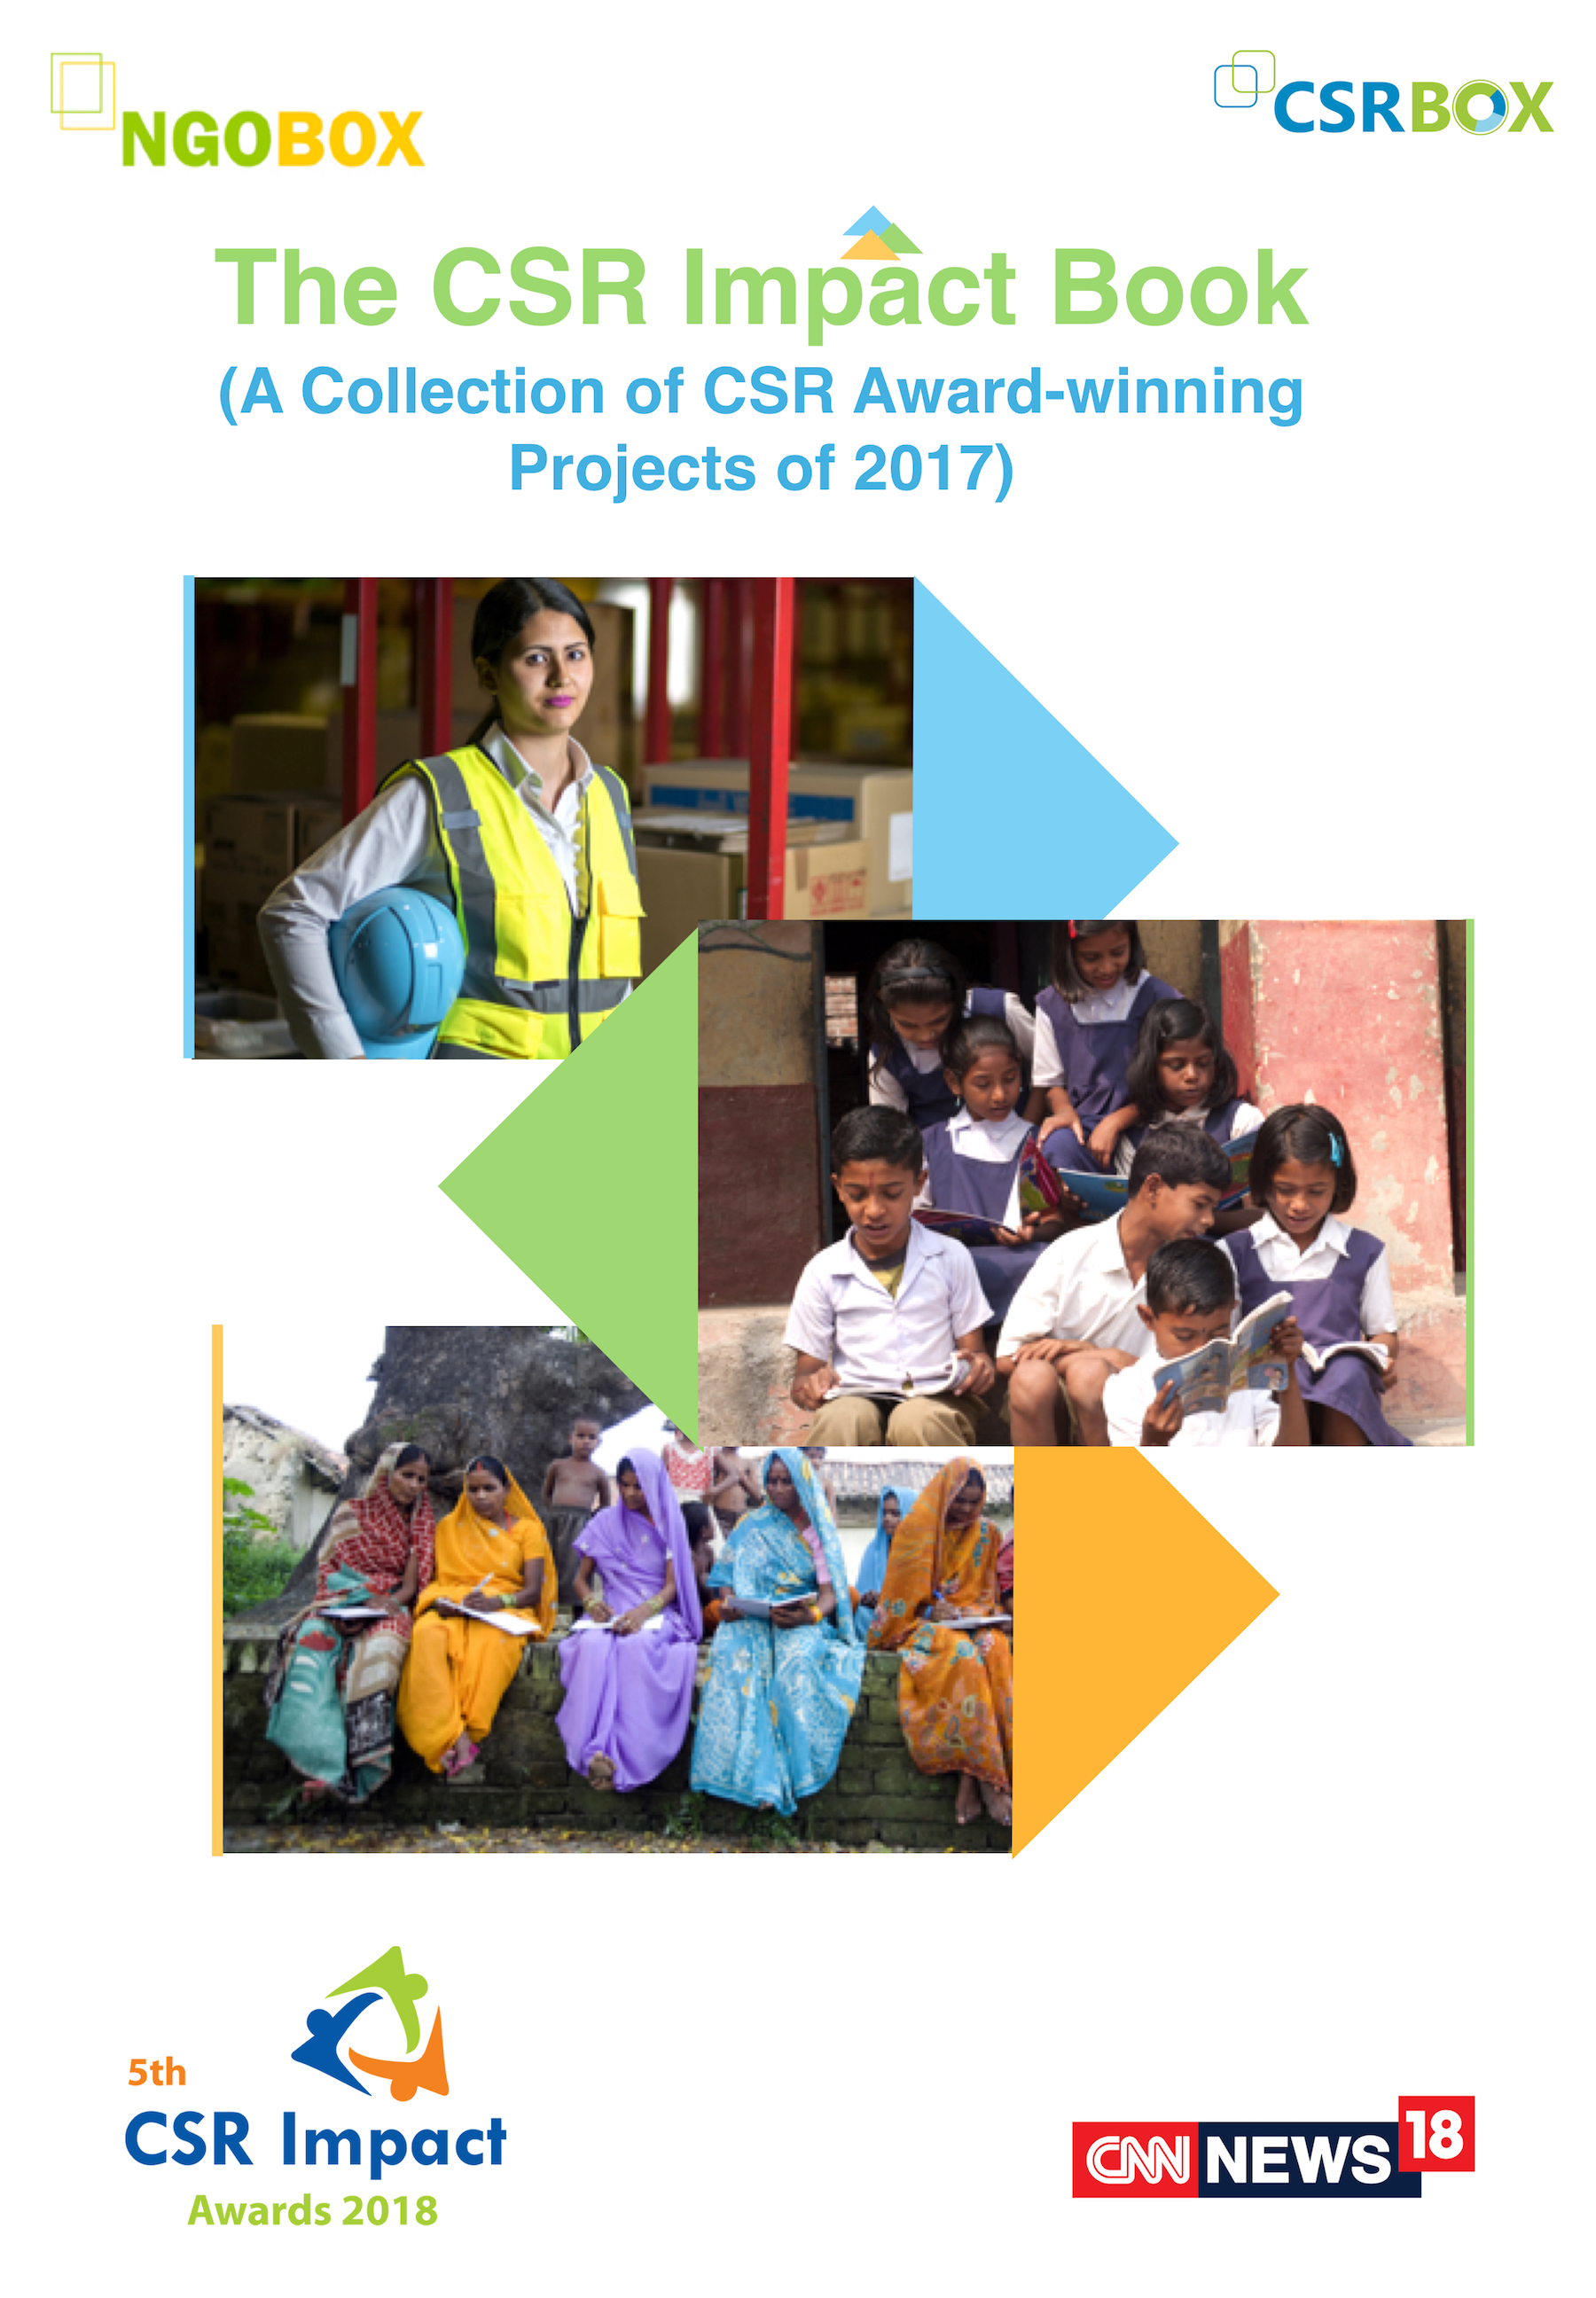 The CSR Impact Book - A collection of CSR Impact Awards-winning projects of 2017